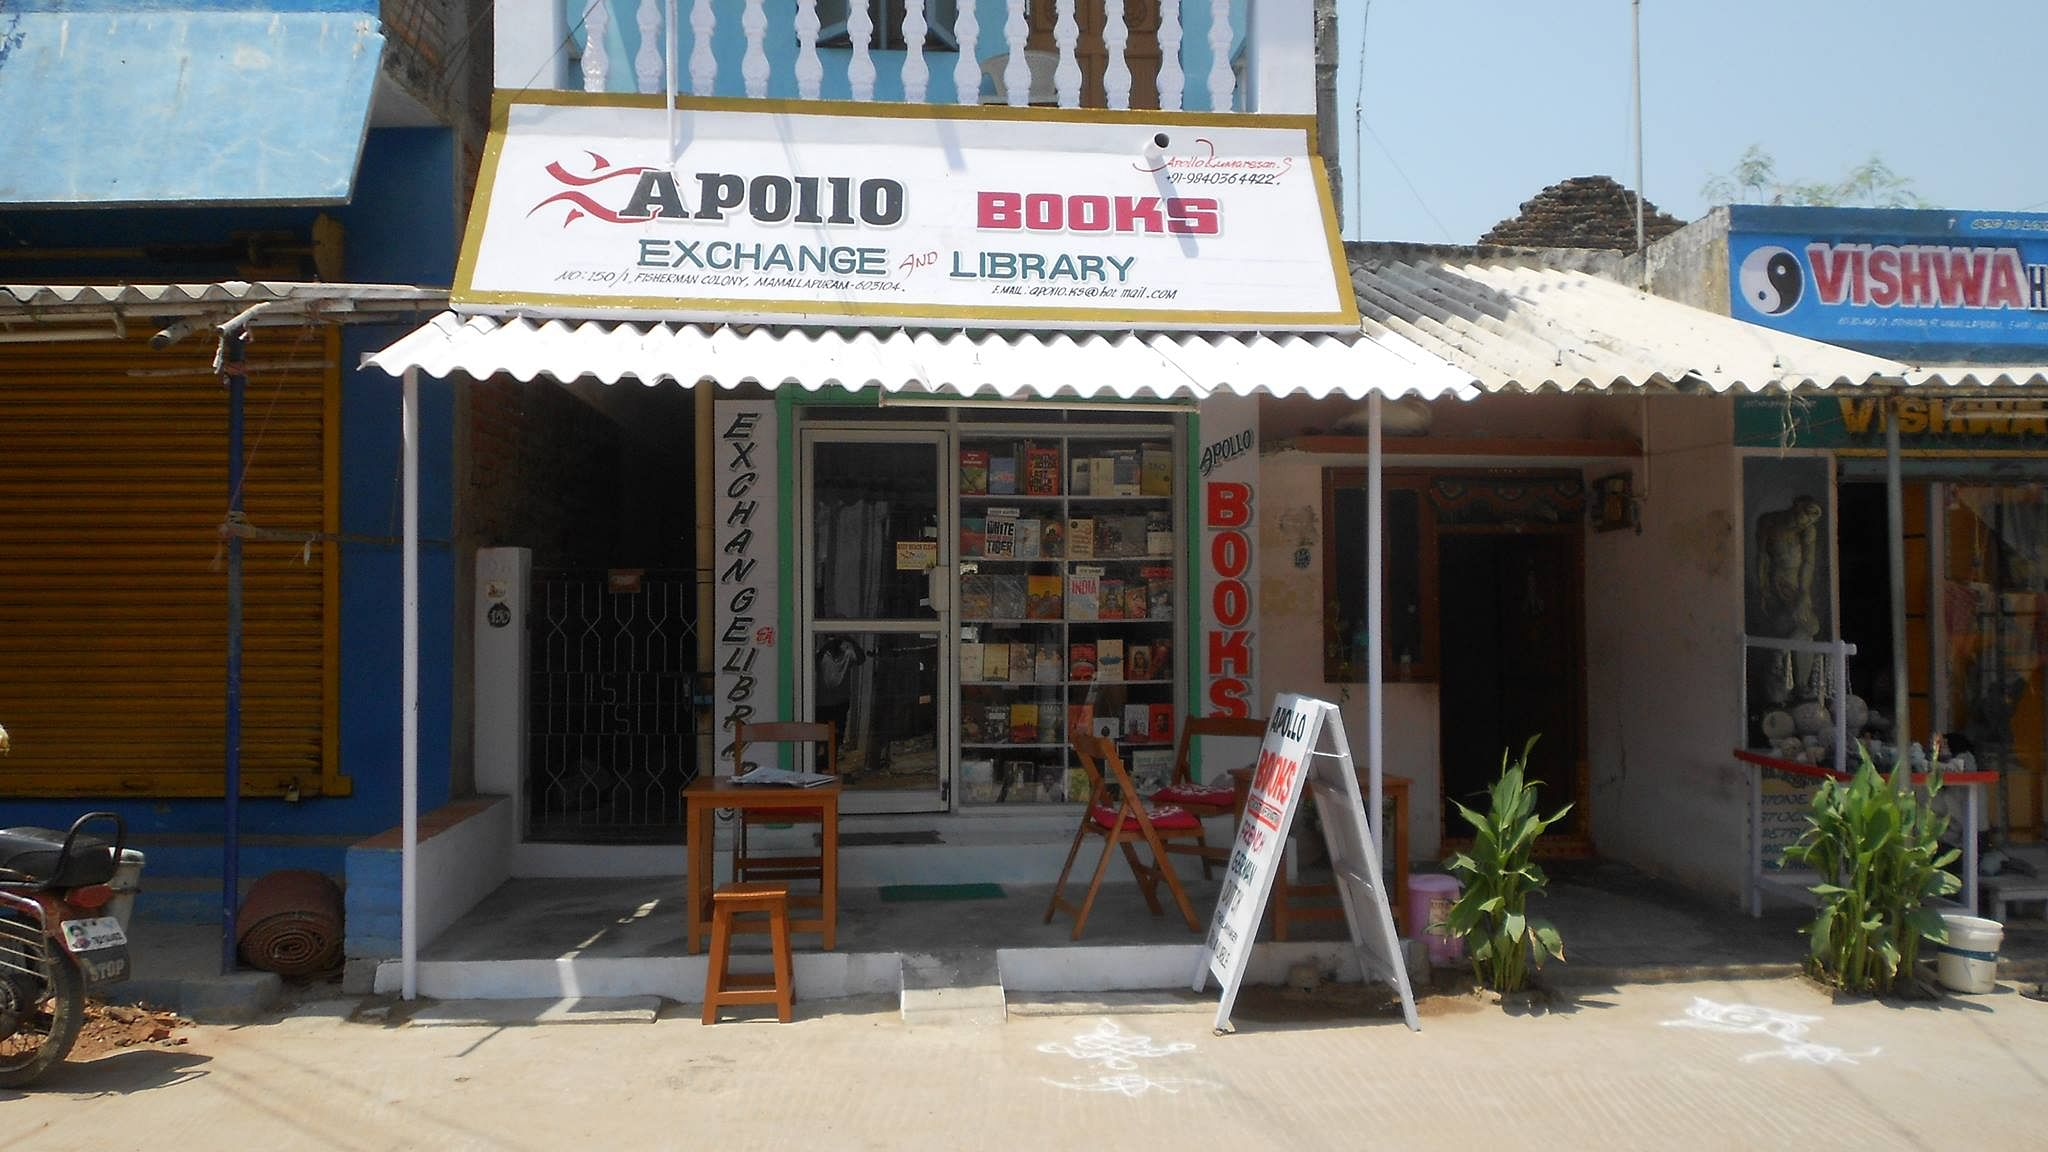 Apollo bookstore